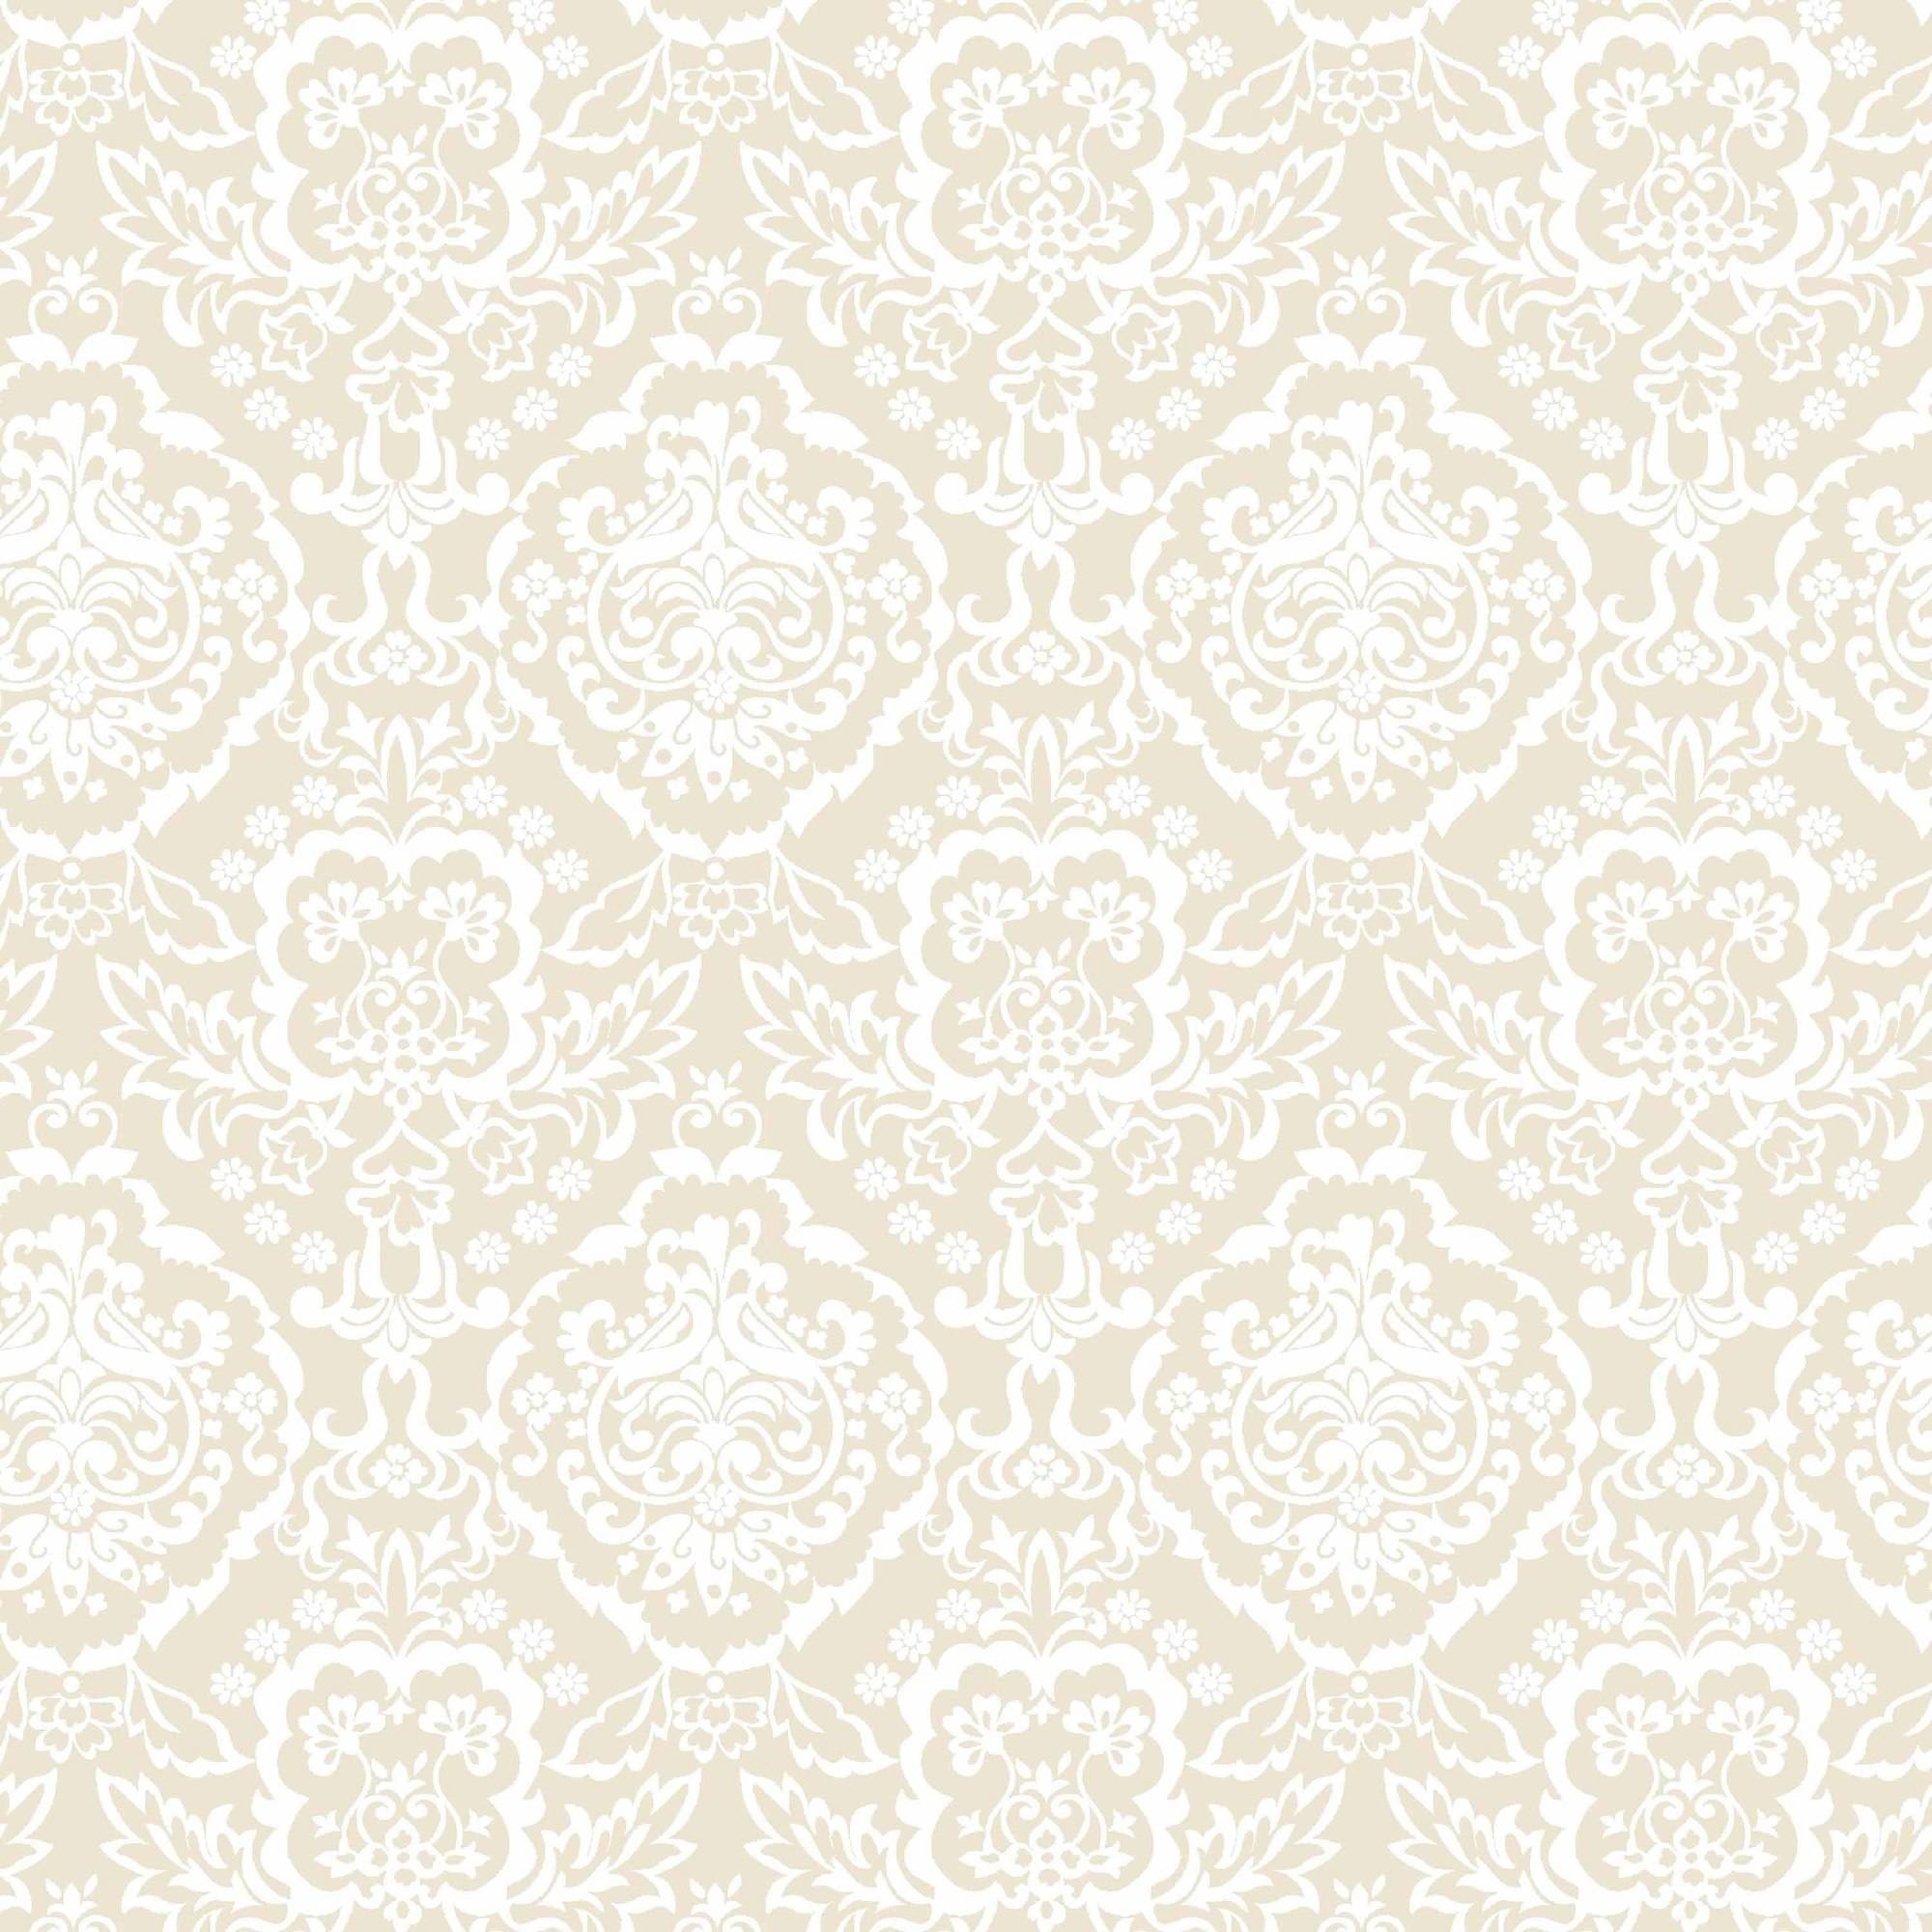 "Floral Baroque Simply Sand Soft Cotton Flannel, 43"" By The Yard"